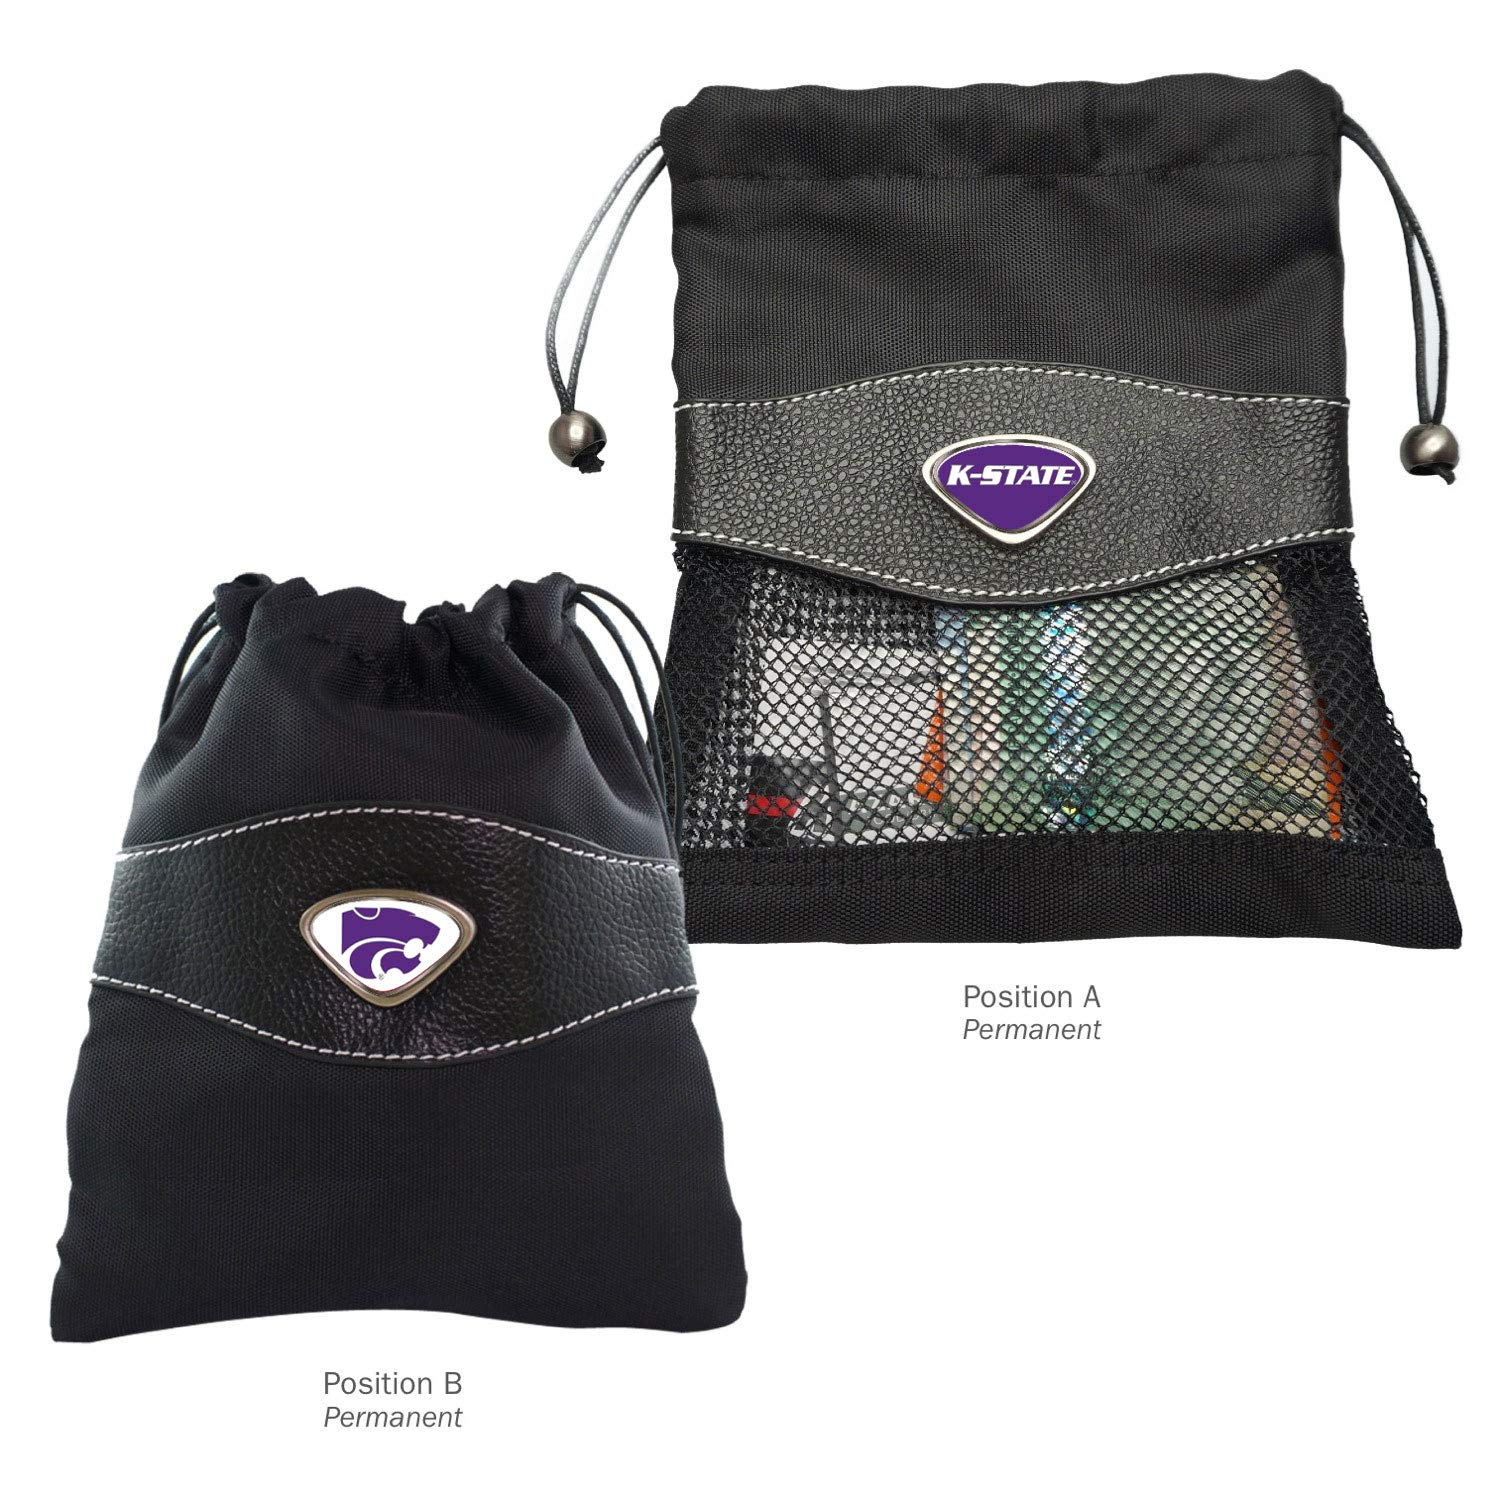 AdSpec NCAA Kansas State Wildcats Collegiate Valuables BagCollegiate Valuables Bag One Size Black